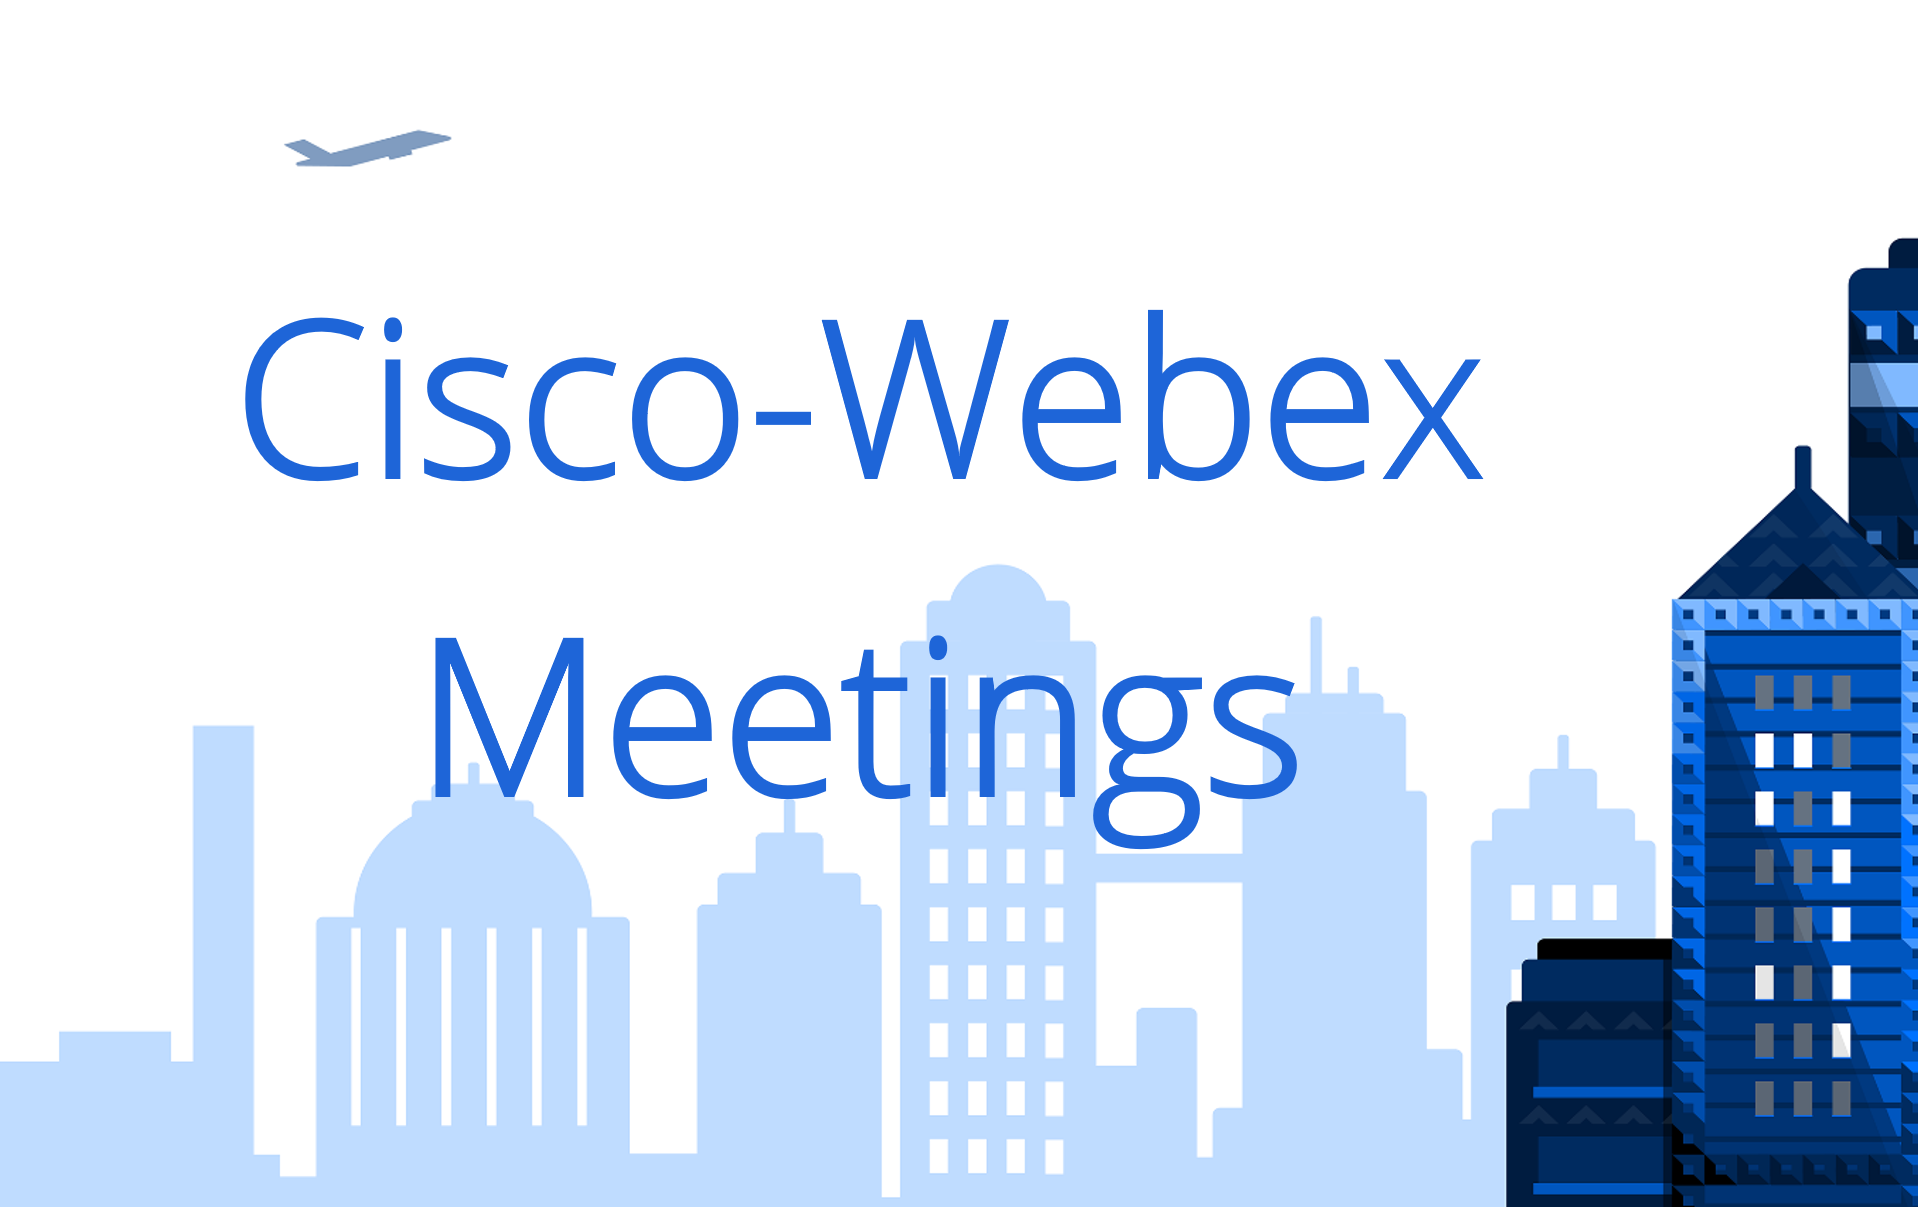 Cisco-Webex Meetings + Bluescape + Outlook